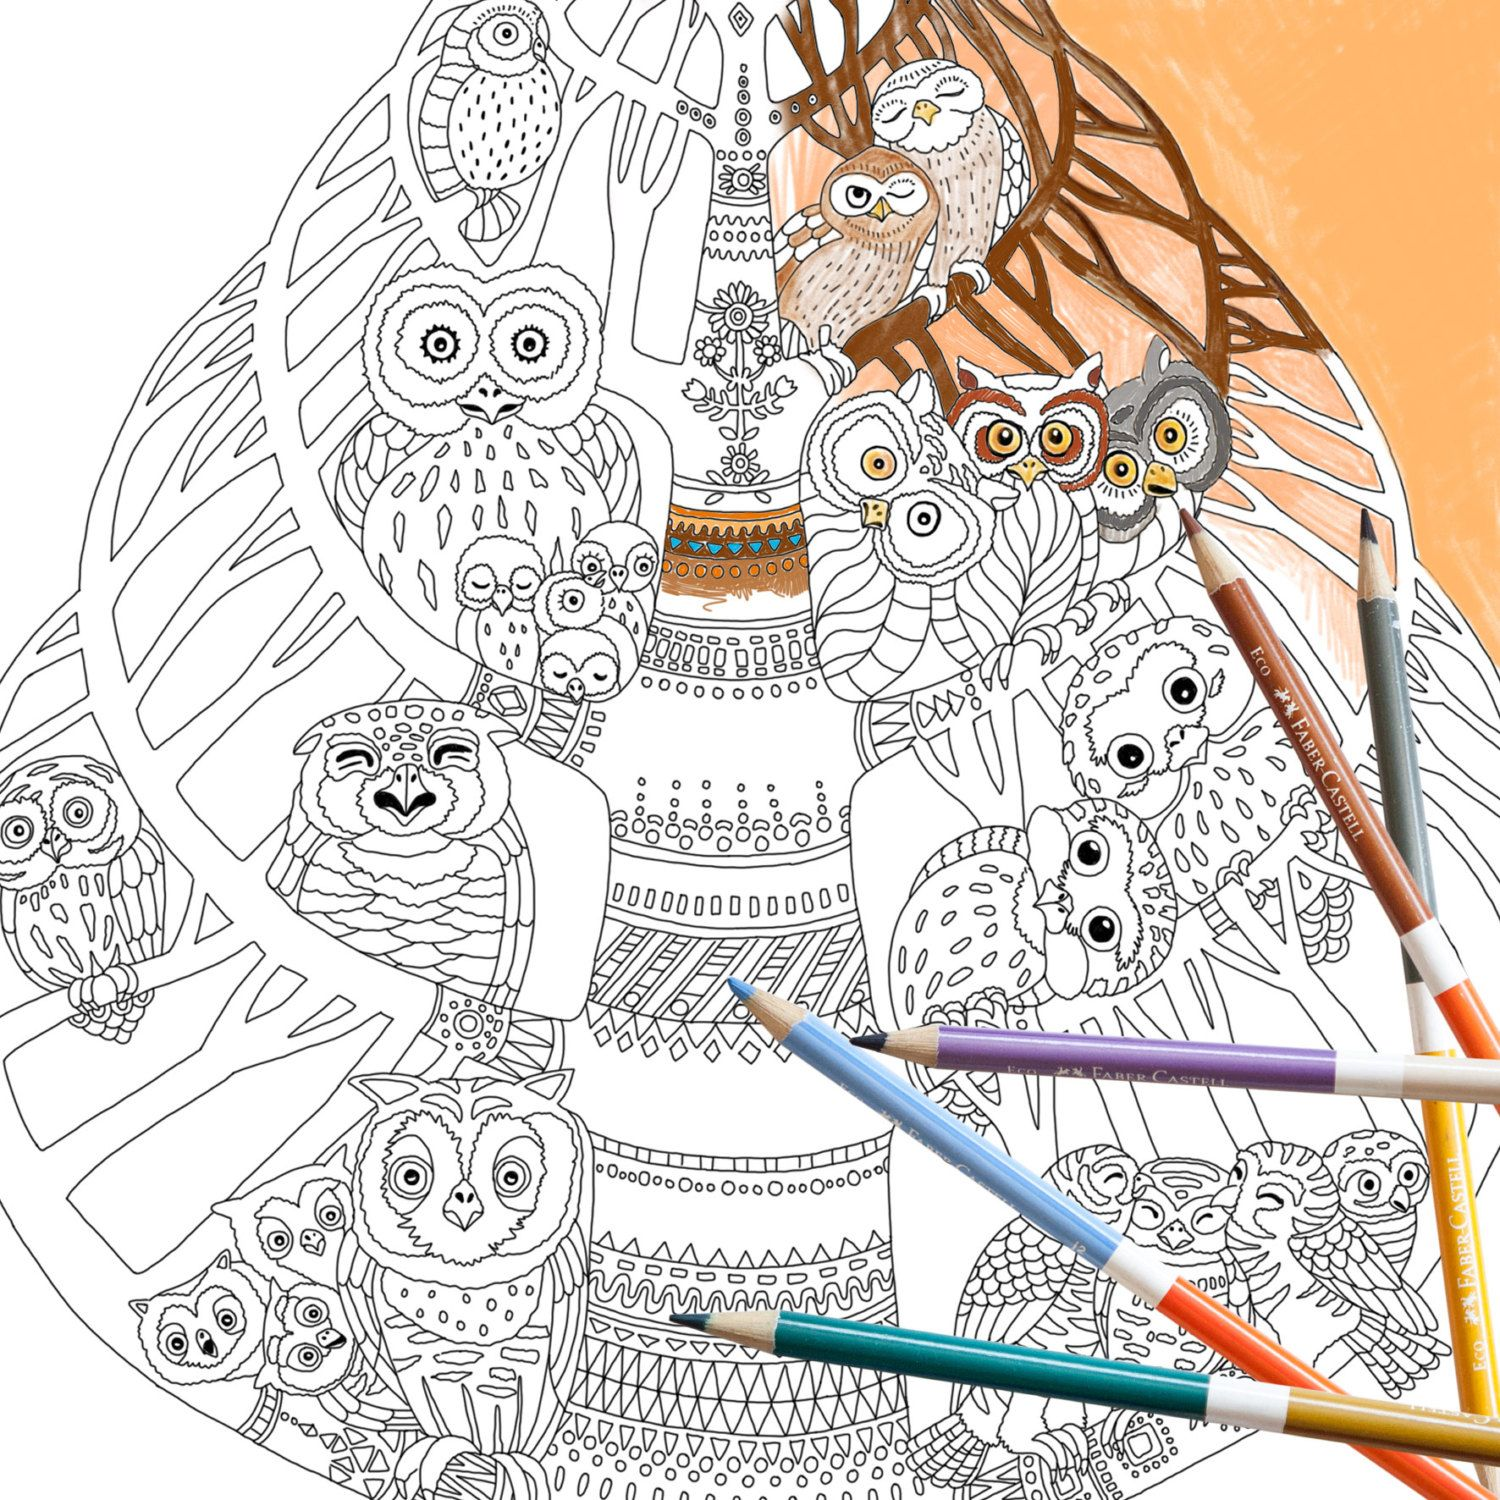 zen colouring cats : Coloring Page Instant Download Owl Tree Adult Coloring Page Bird Owl Owlet Family Tree Nature Forest Adult Coloring Book